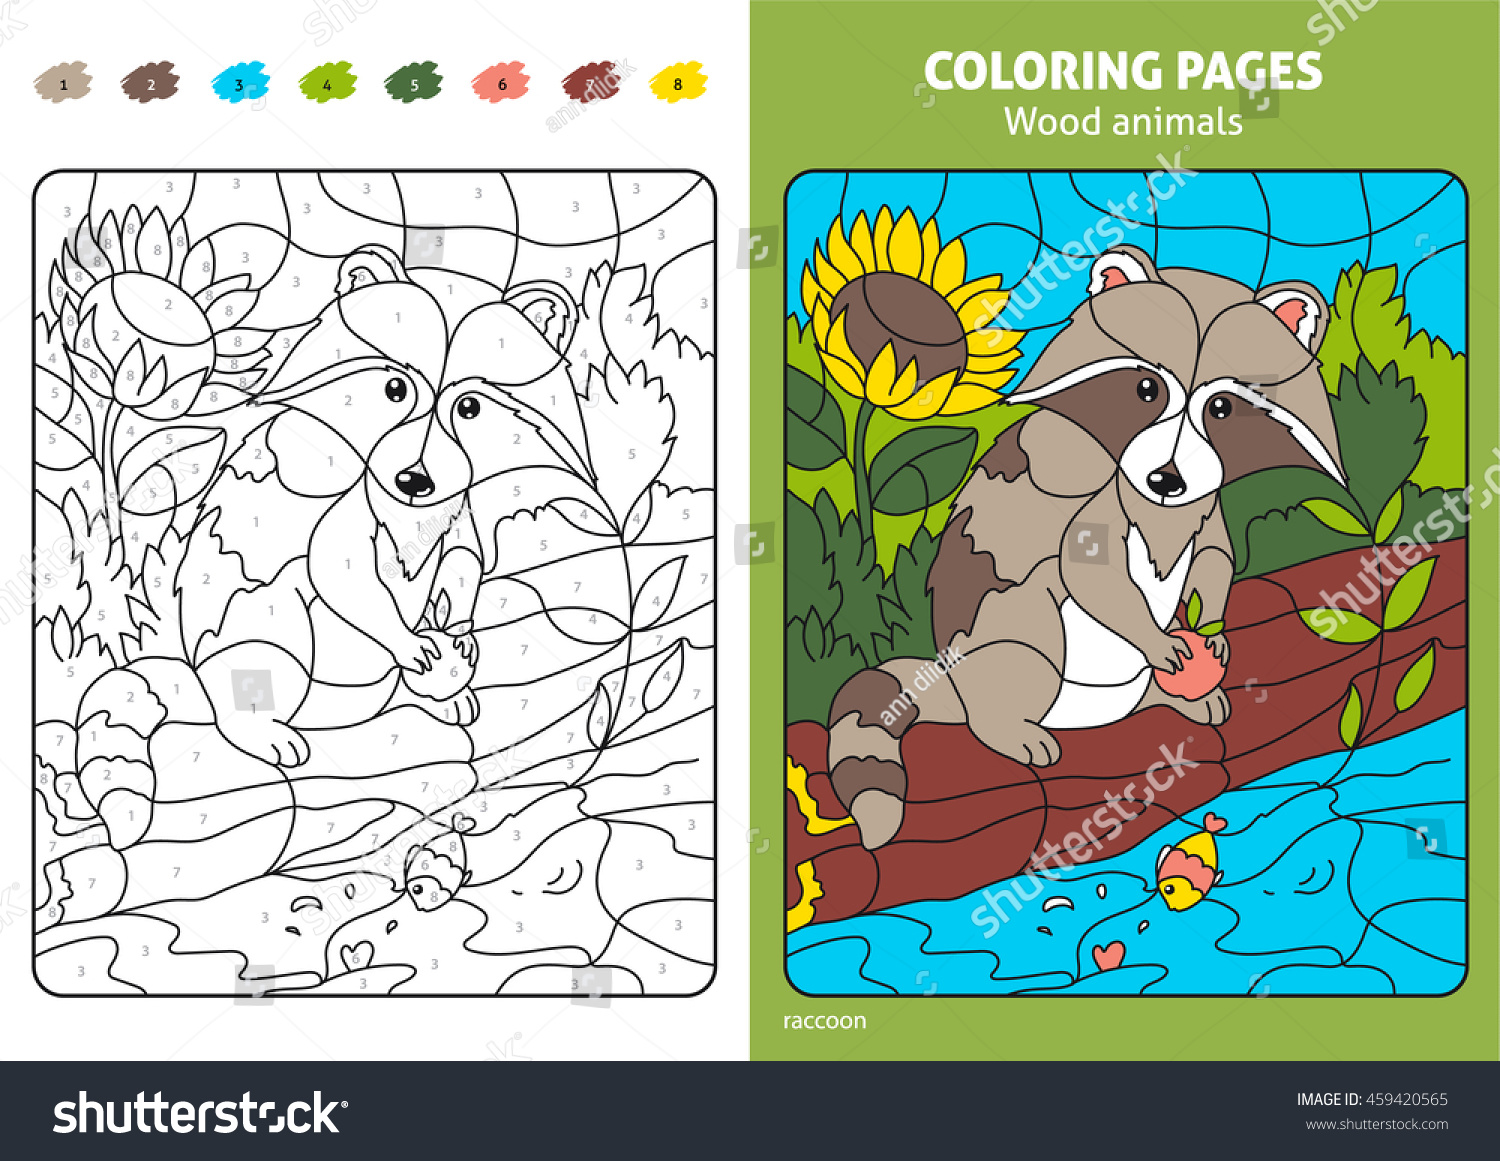 Wood Animals Coloring Page Kids Raccoon Stock Vector (2018 ...